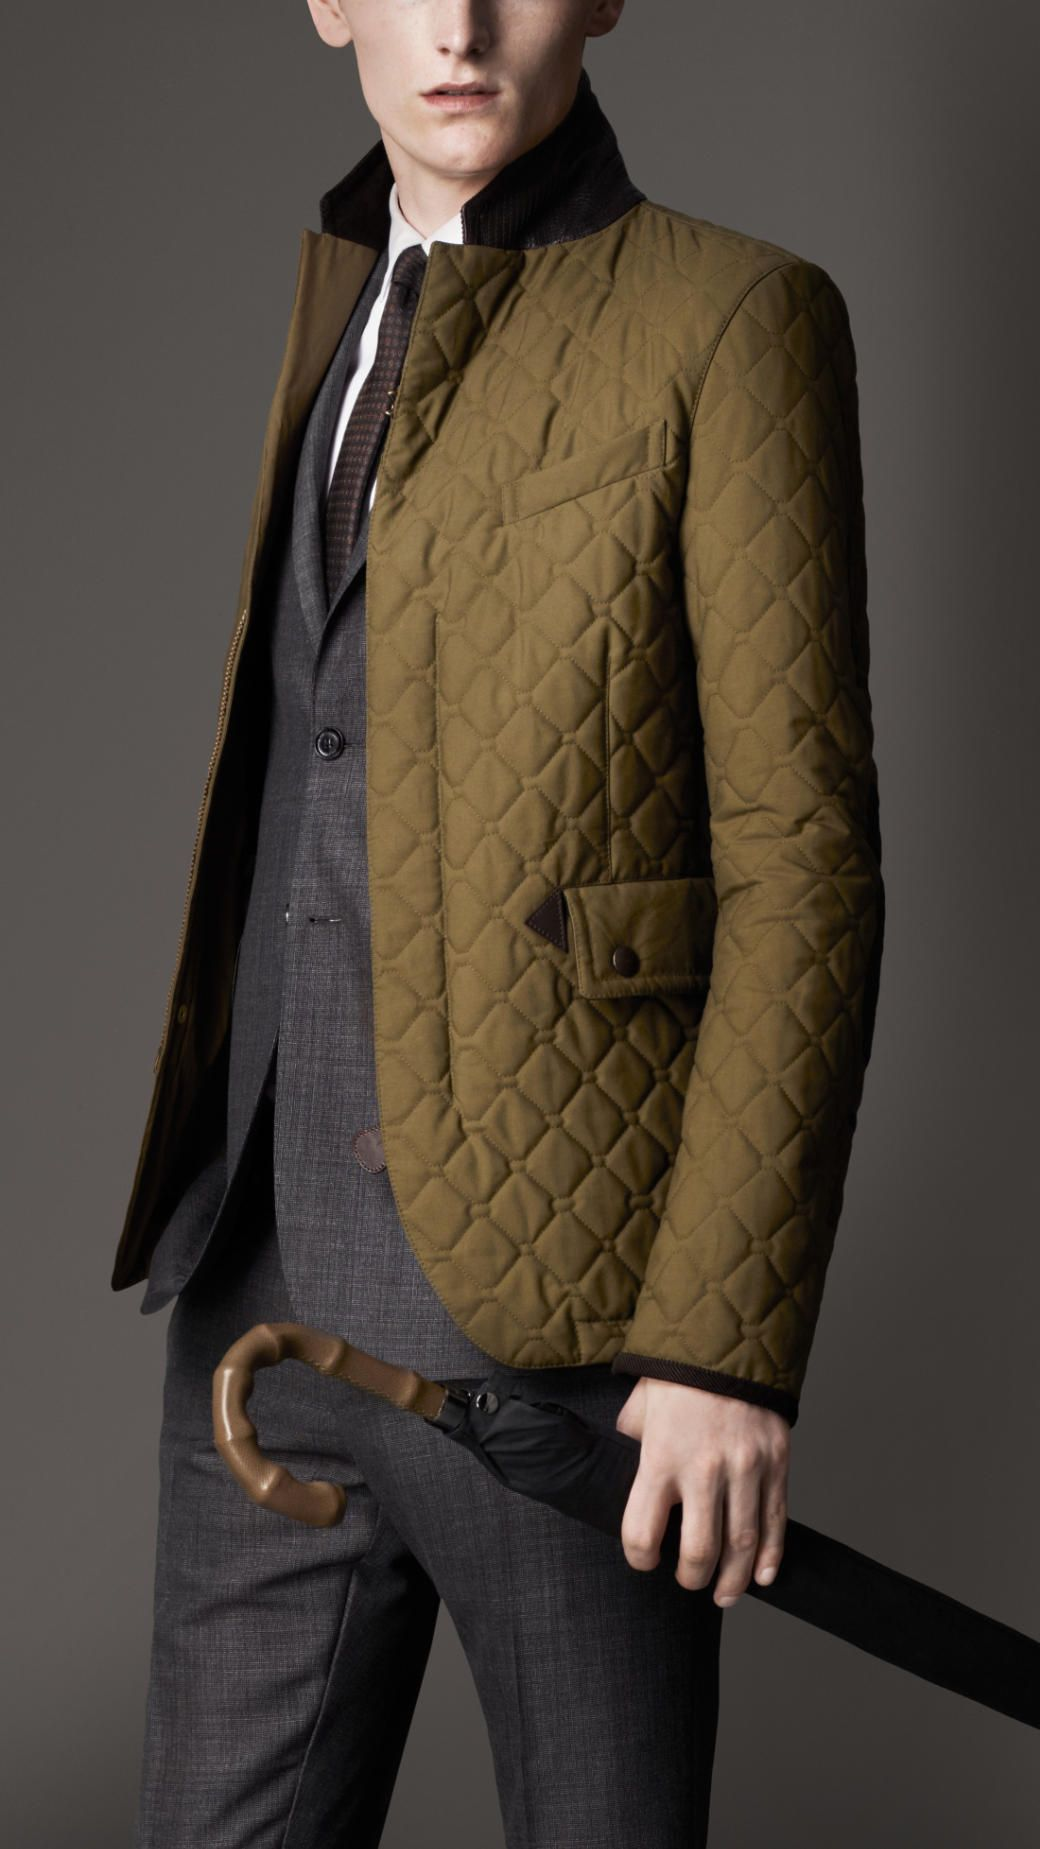 Men S Quilted Jackets Puffers Burberry Official Quilted Jacket Men Quilted Jacket Mens Outfits [ 1849 x 1040 Pixel ]